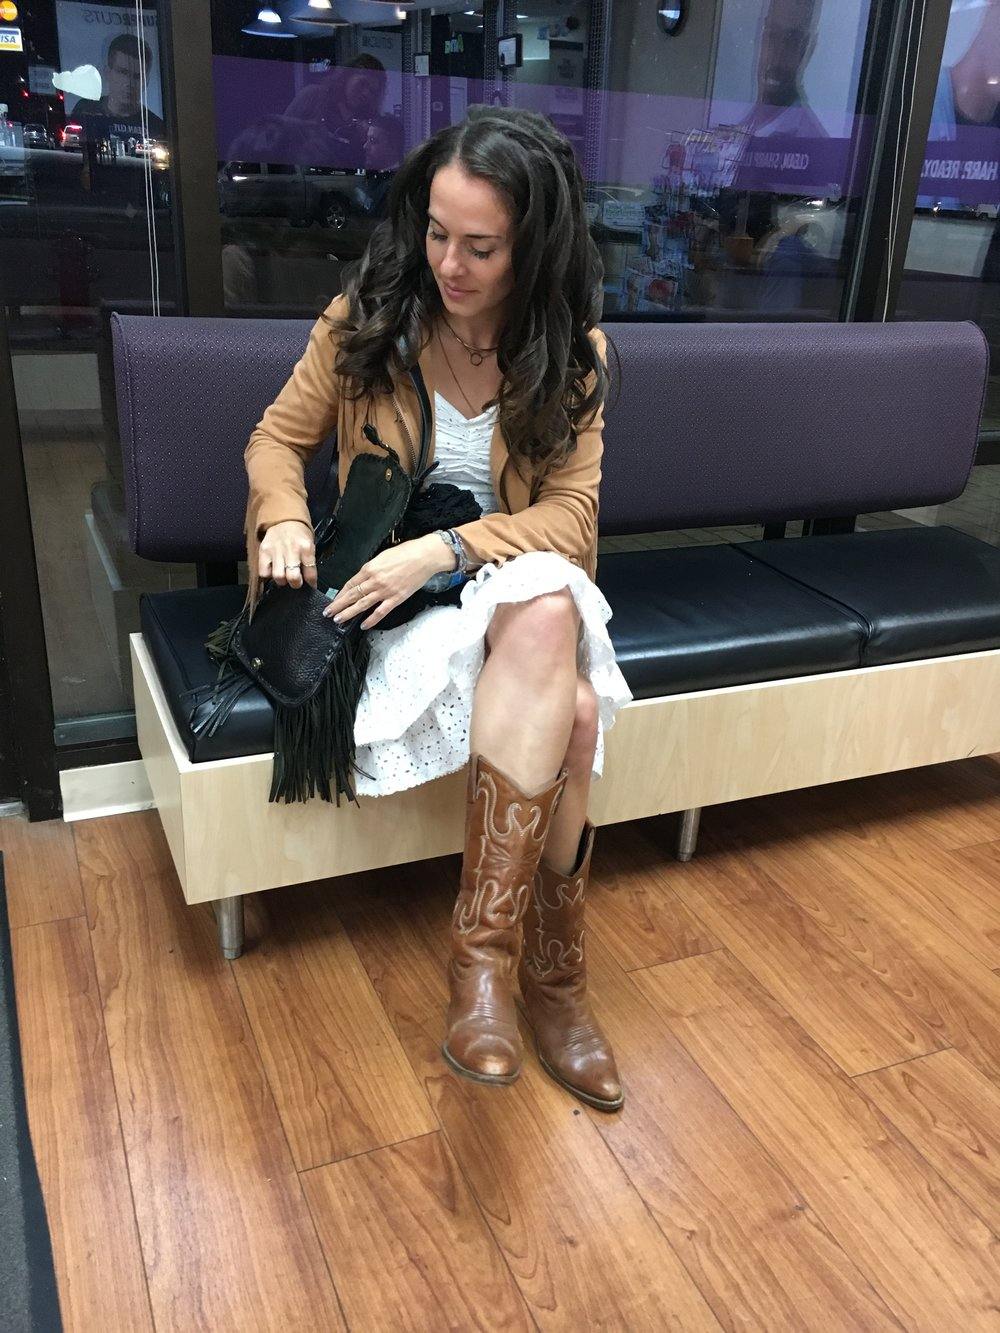 "Post blowout appointment getting ready for the festivities in my  12th Tribe  ""ferris fringe jacket"" cowboy boots and white eyelet dress with RM fringe purse."